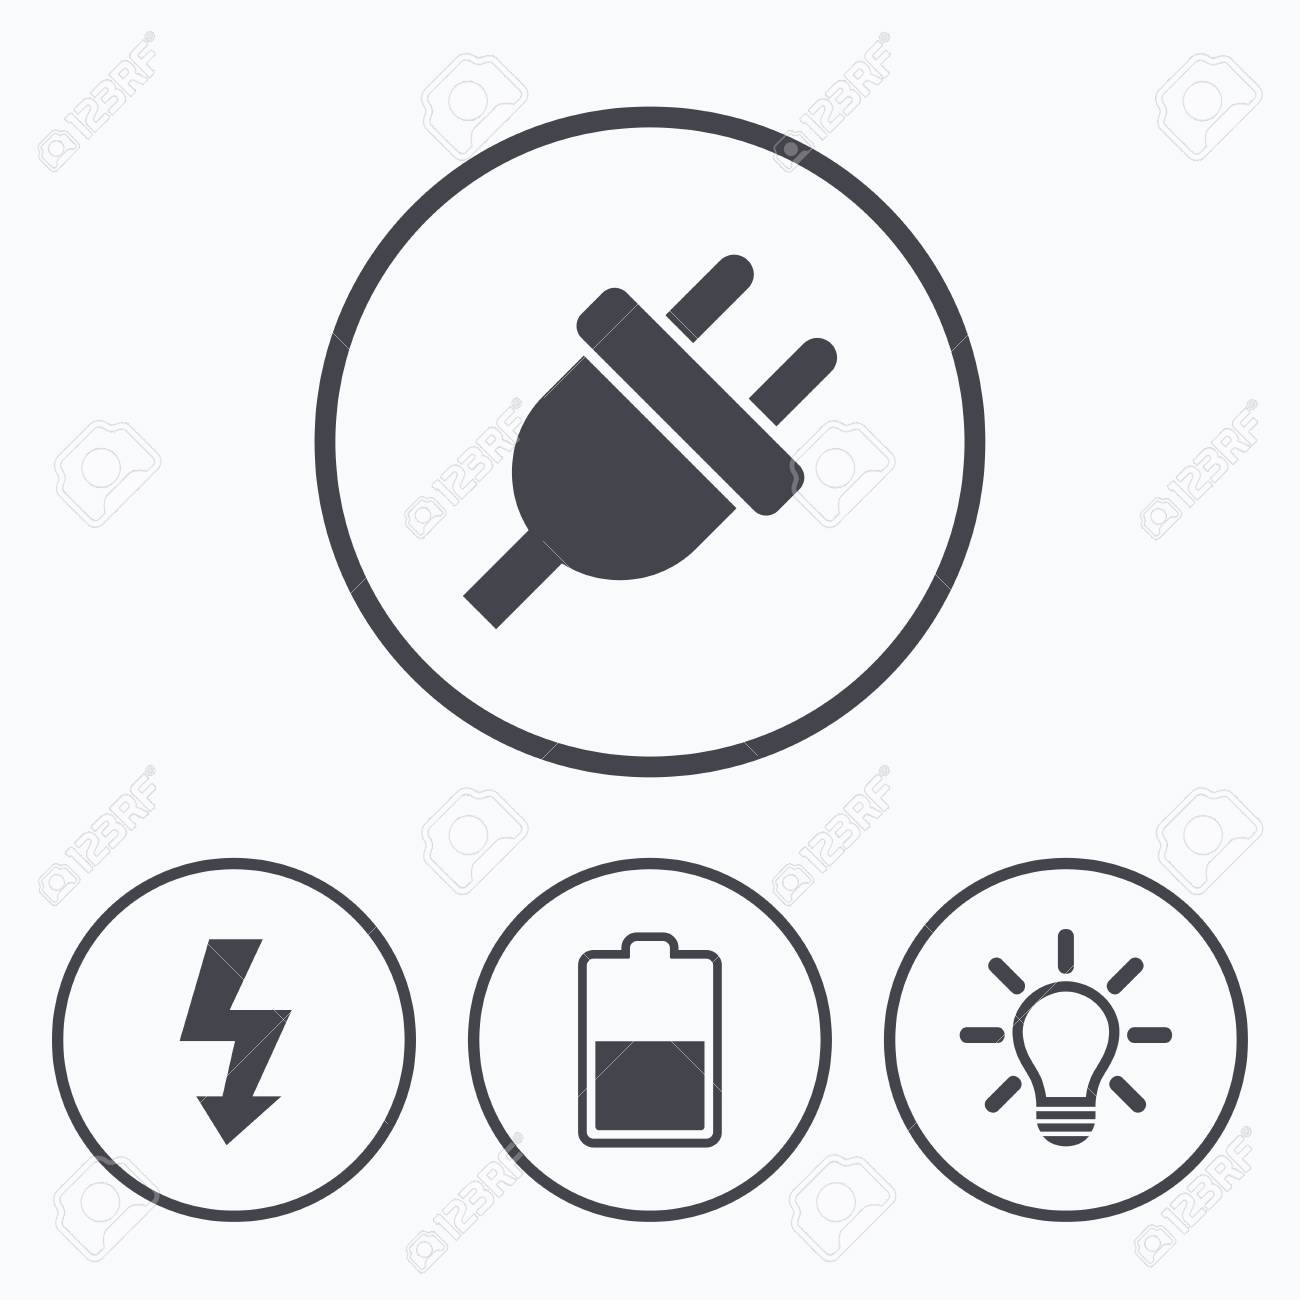 Electric Plug Icon Light Lamp And Battery Half Symbols Low Circuit With Bulb Electricity Idea Signs